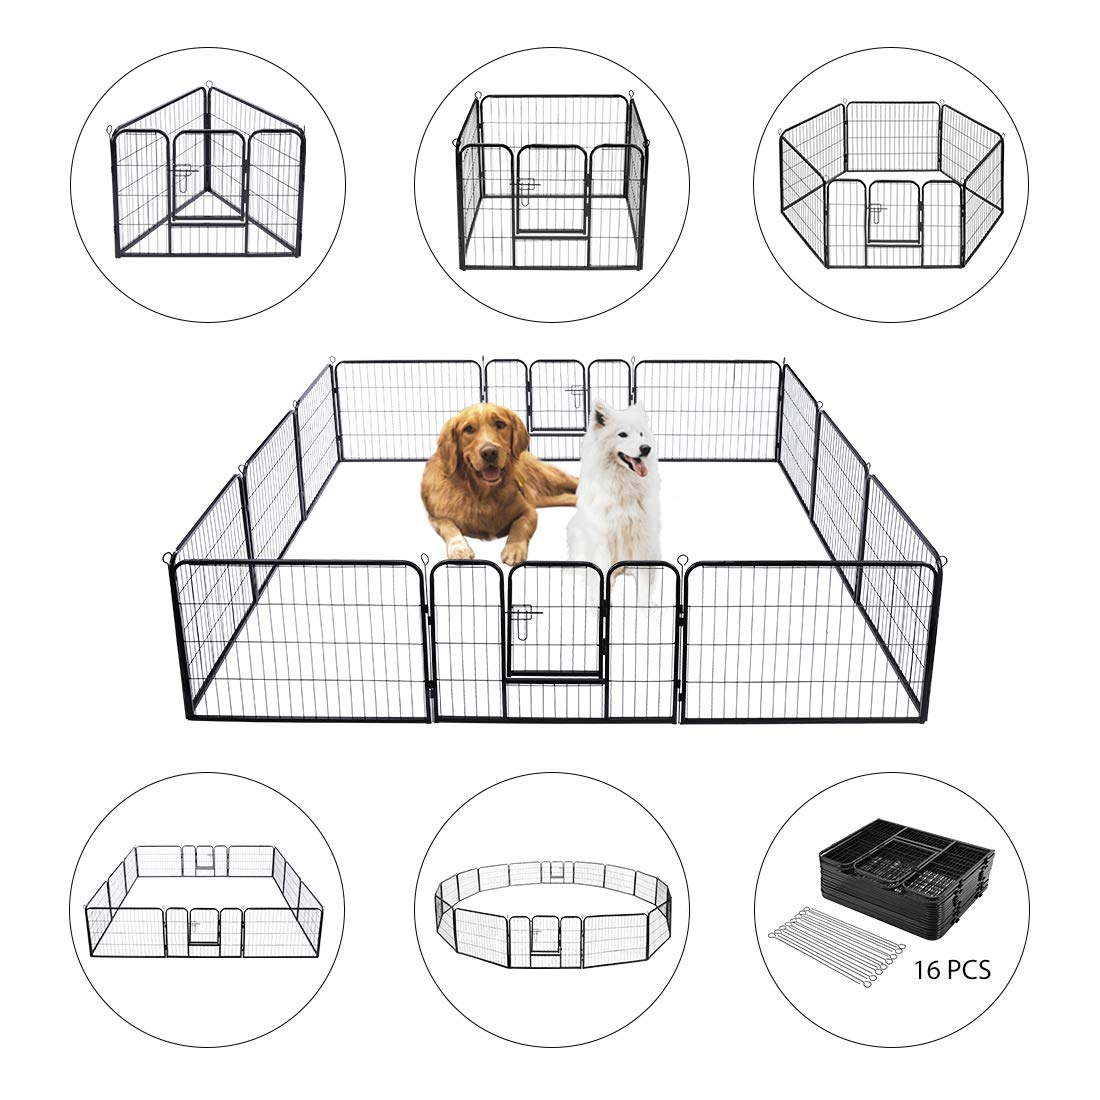 VIVOHOME Heavy Duty Foldable Metal Indoor Outdoor Exercise Pet Fence Barrier Playpen Kennel for Dogs Cats 16 Panels